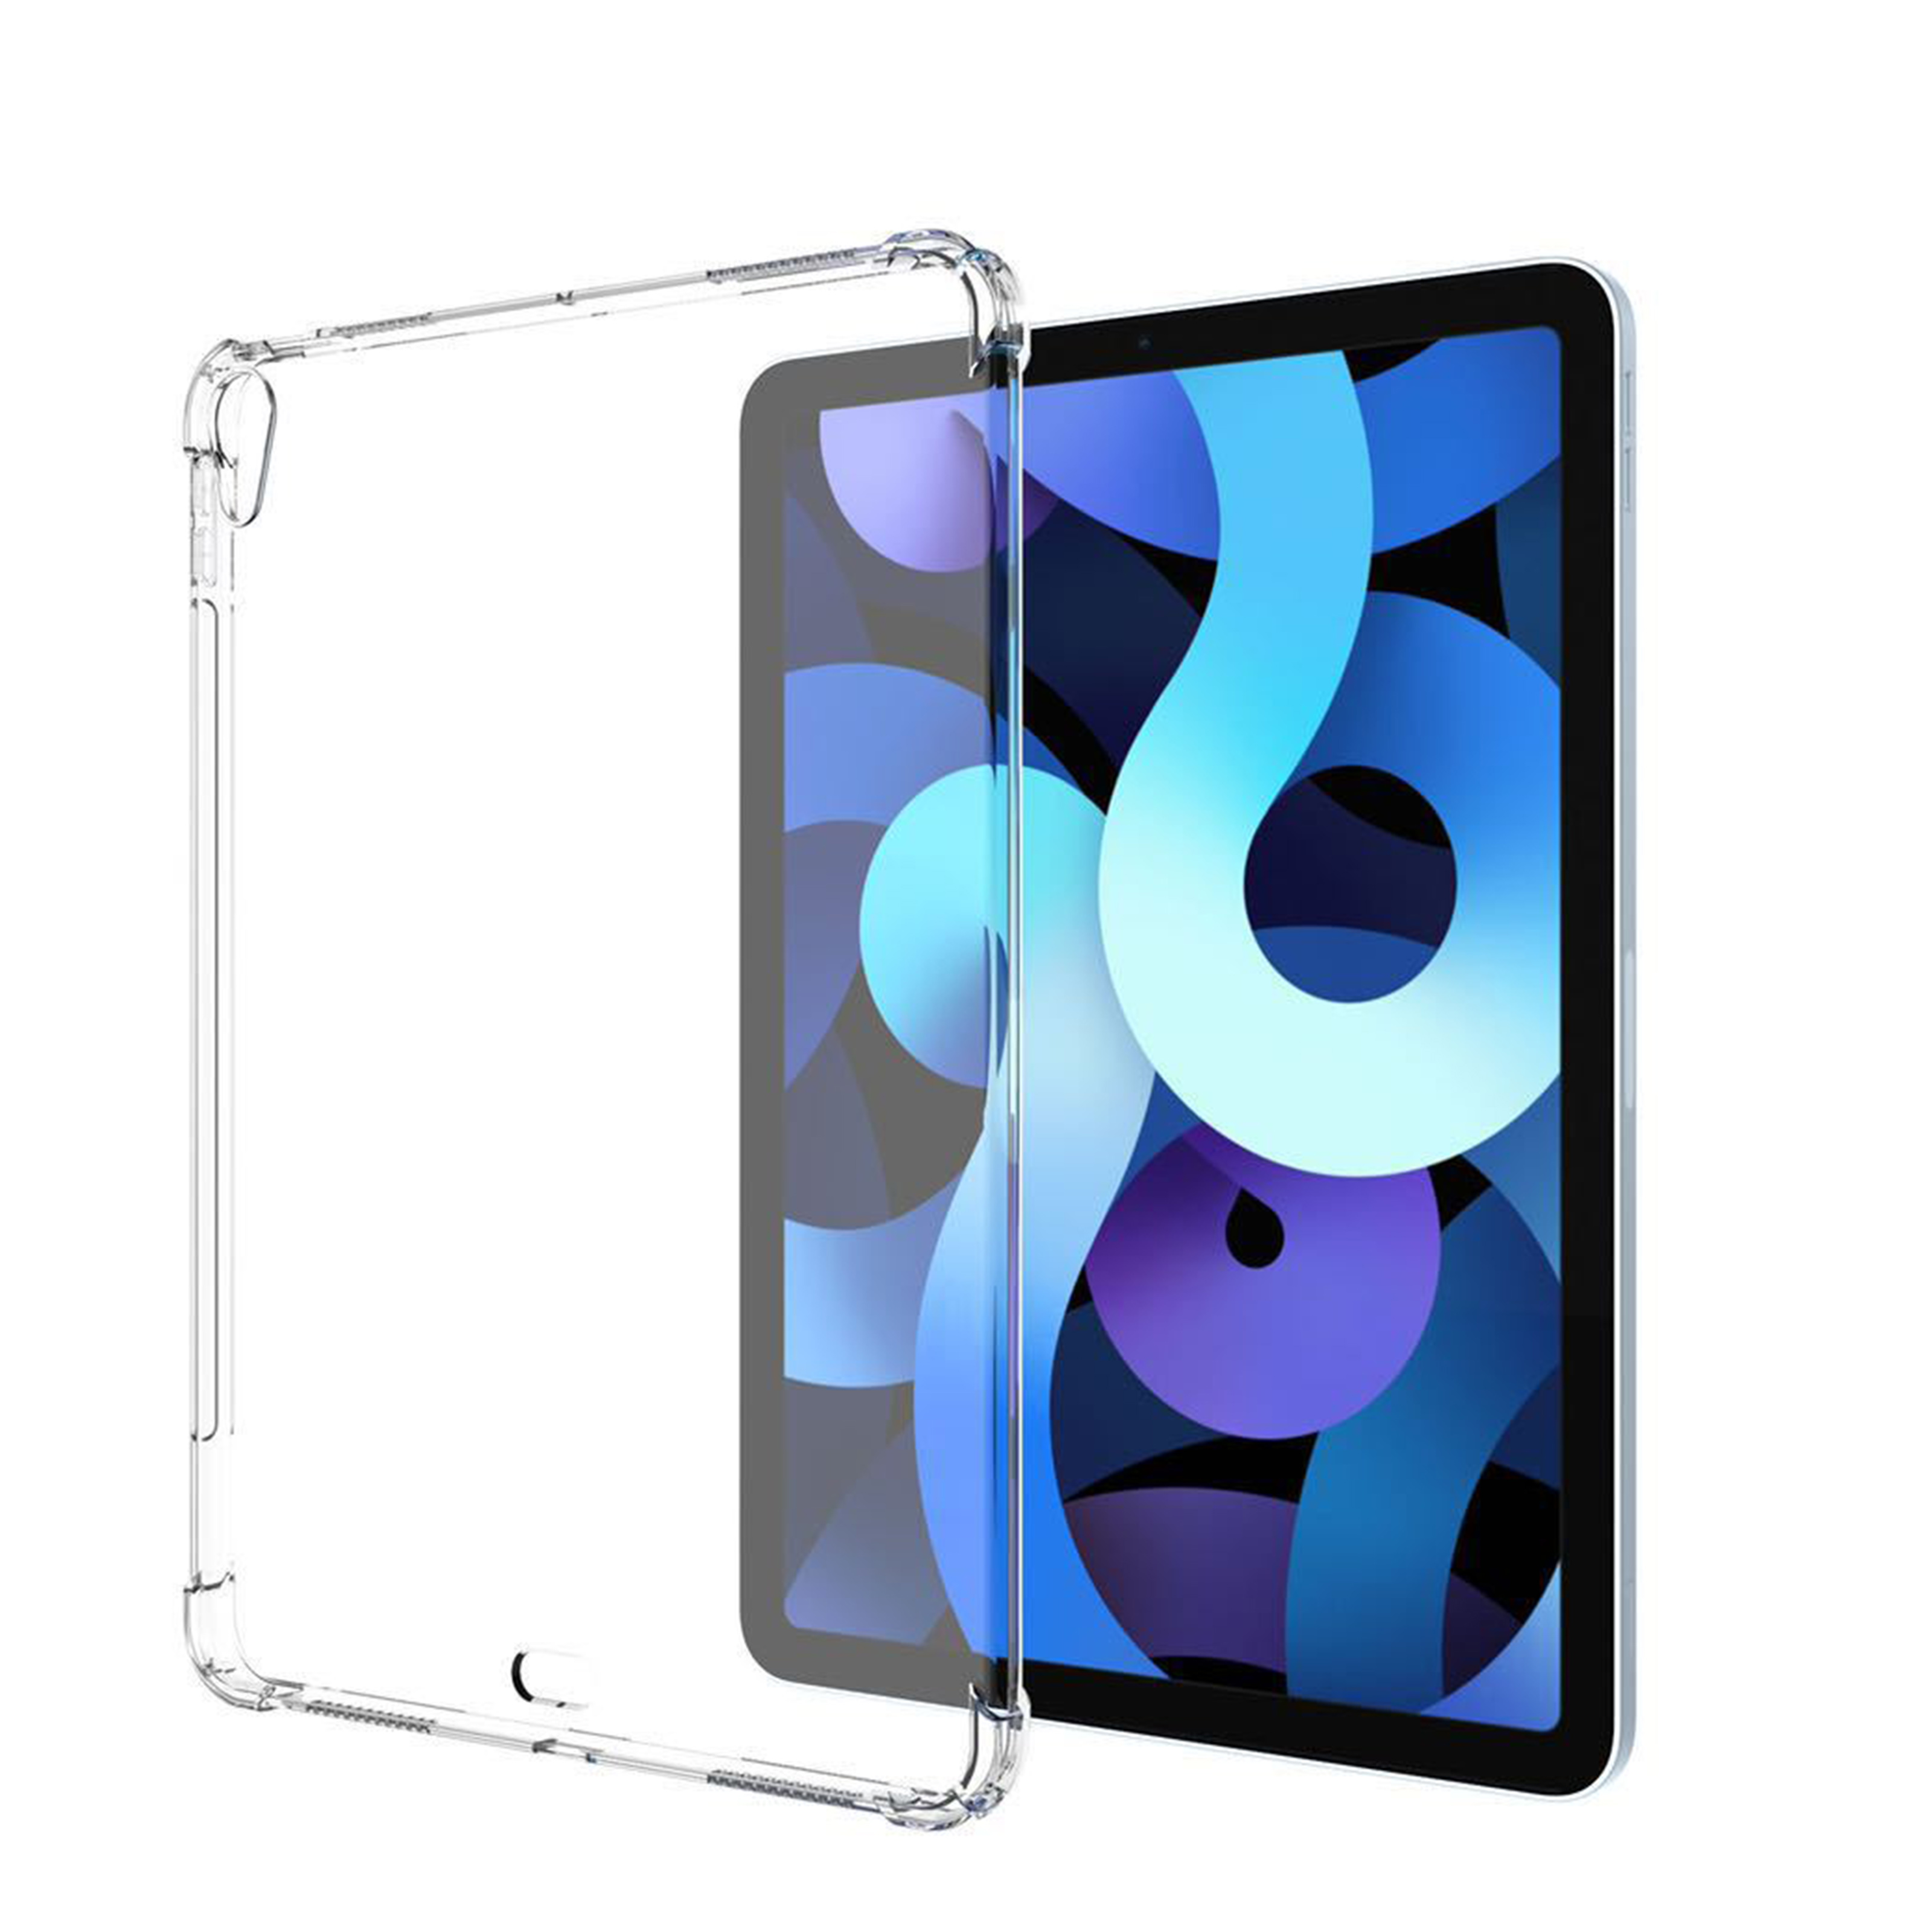 Tablet Case For 2020 4th generation Apple ipad Air4 10 9 Drop Resistance Soft Cover For